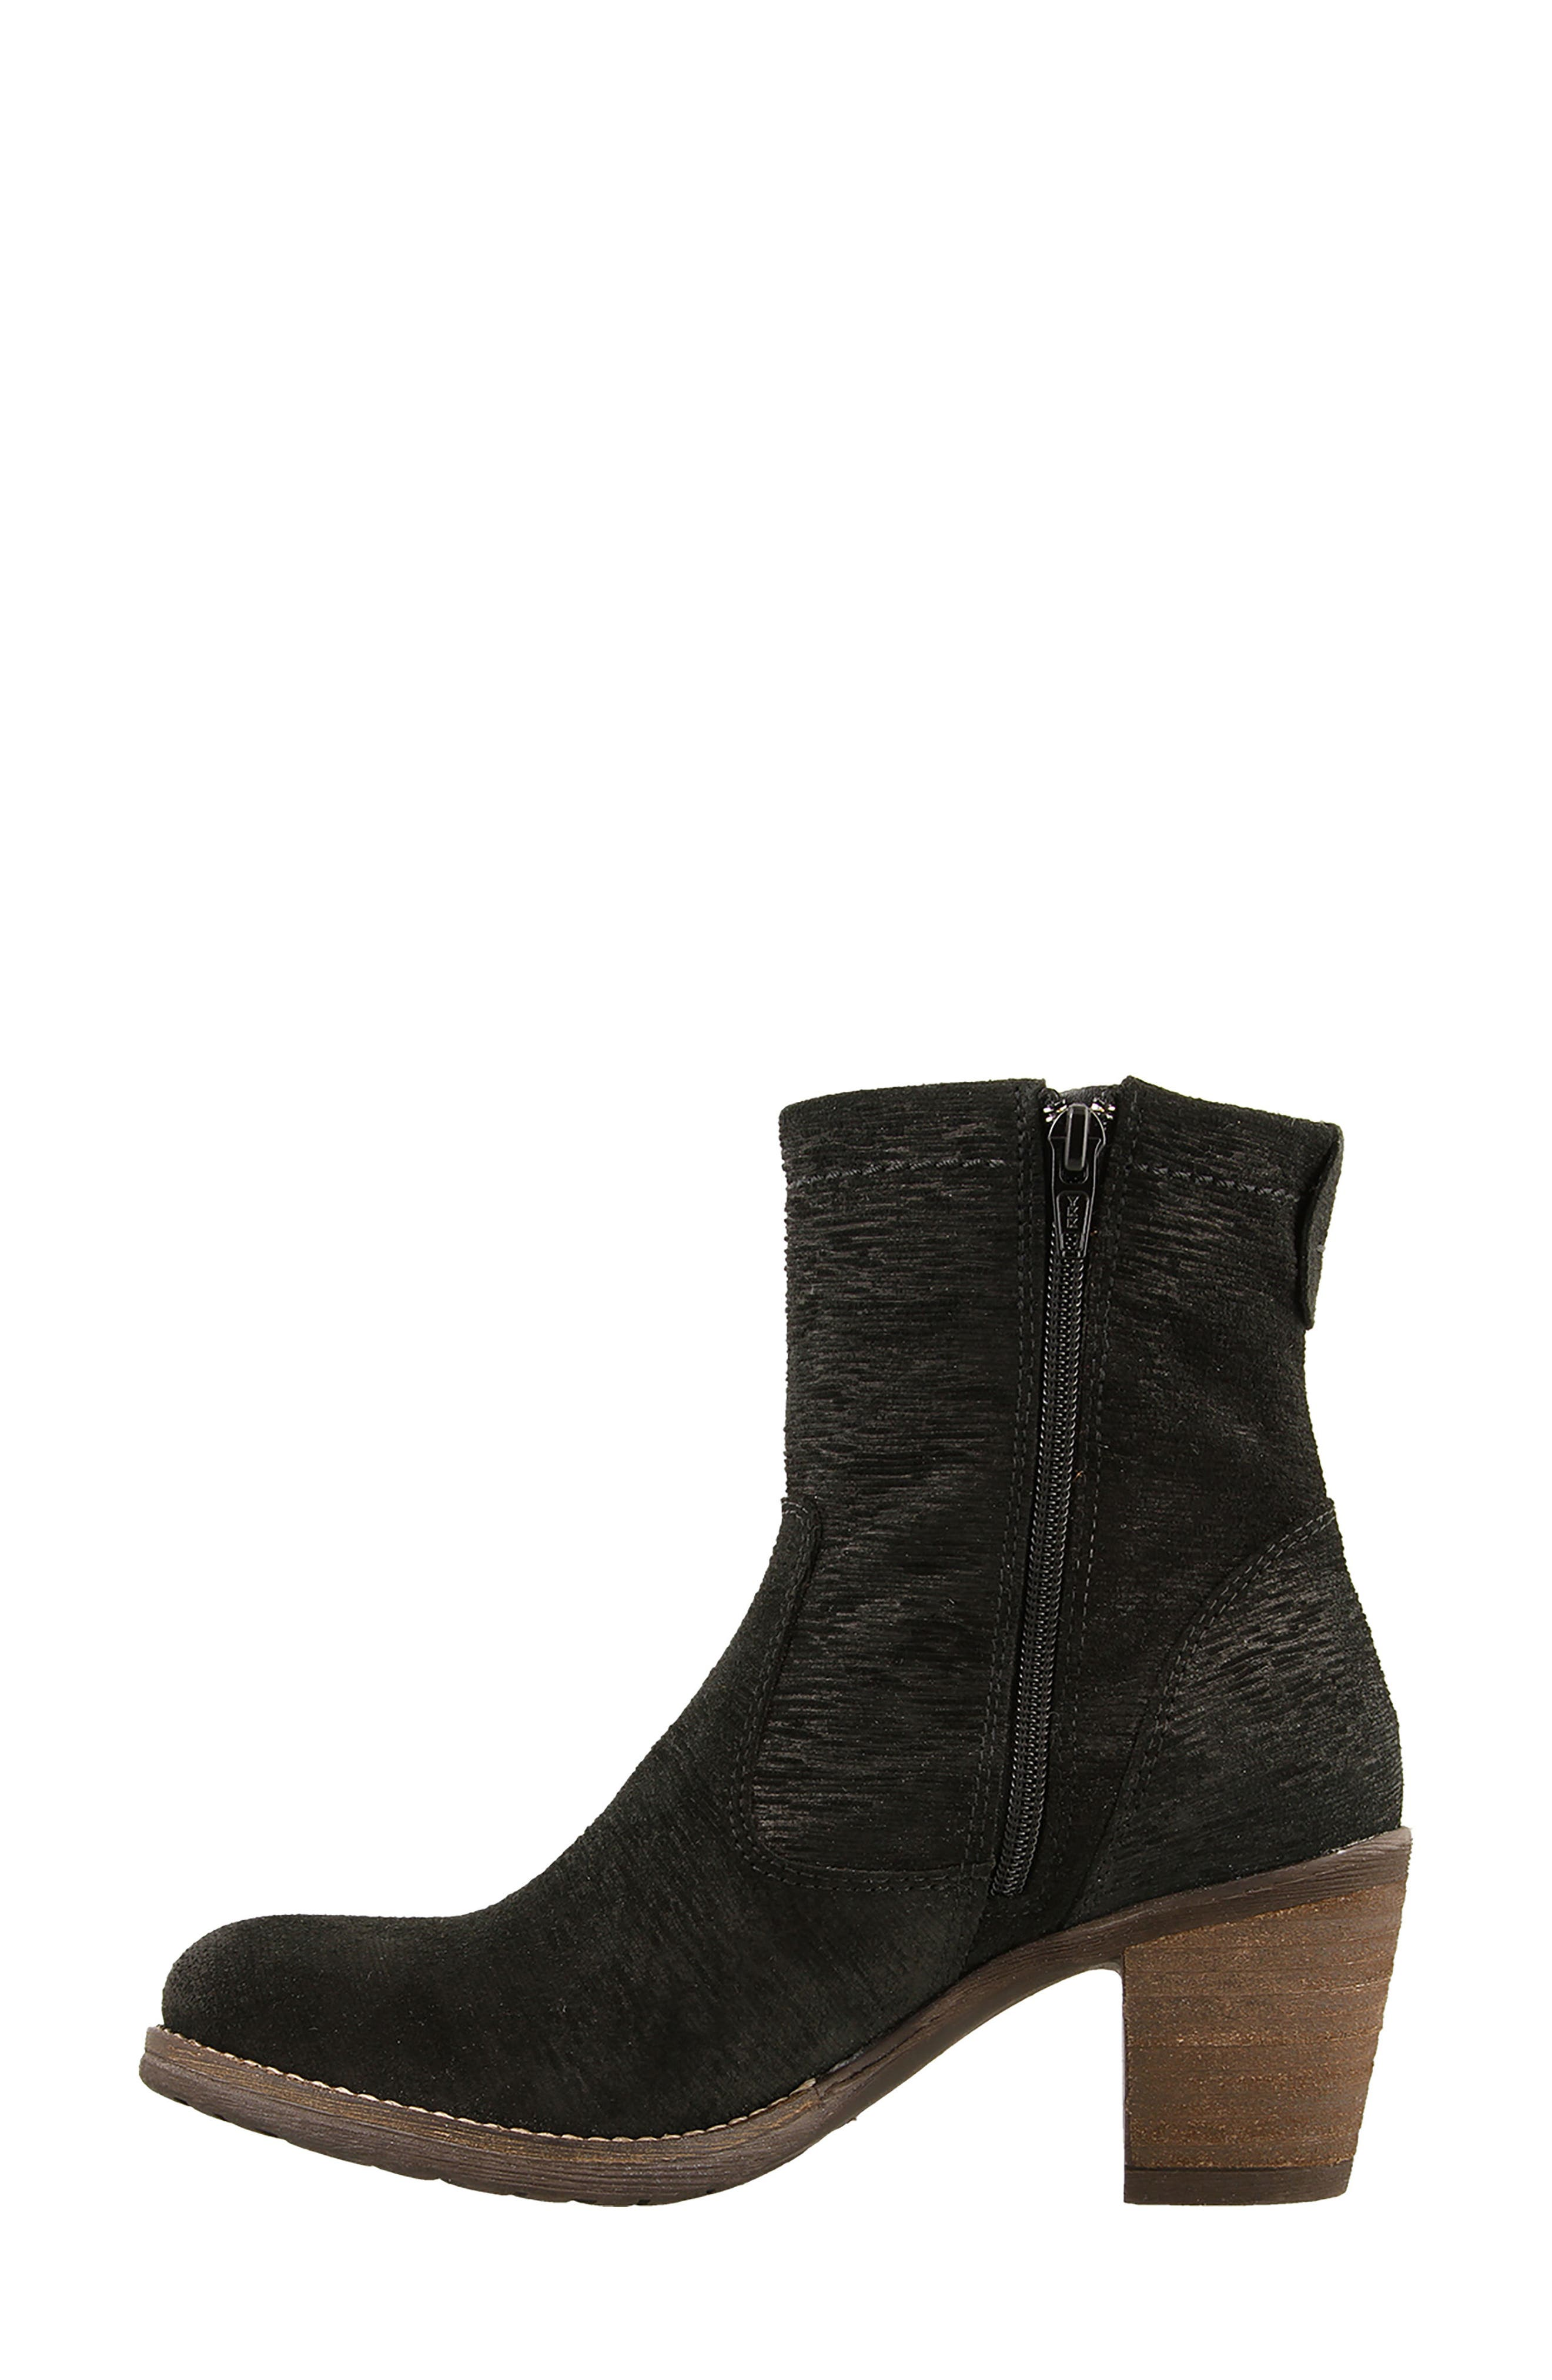 Shaka 2 Embossed Faux Fur Lined Bootie,                             Alternate thumbnail 4, color,                             Black Emboss Suede